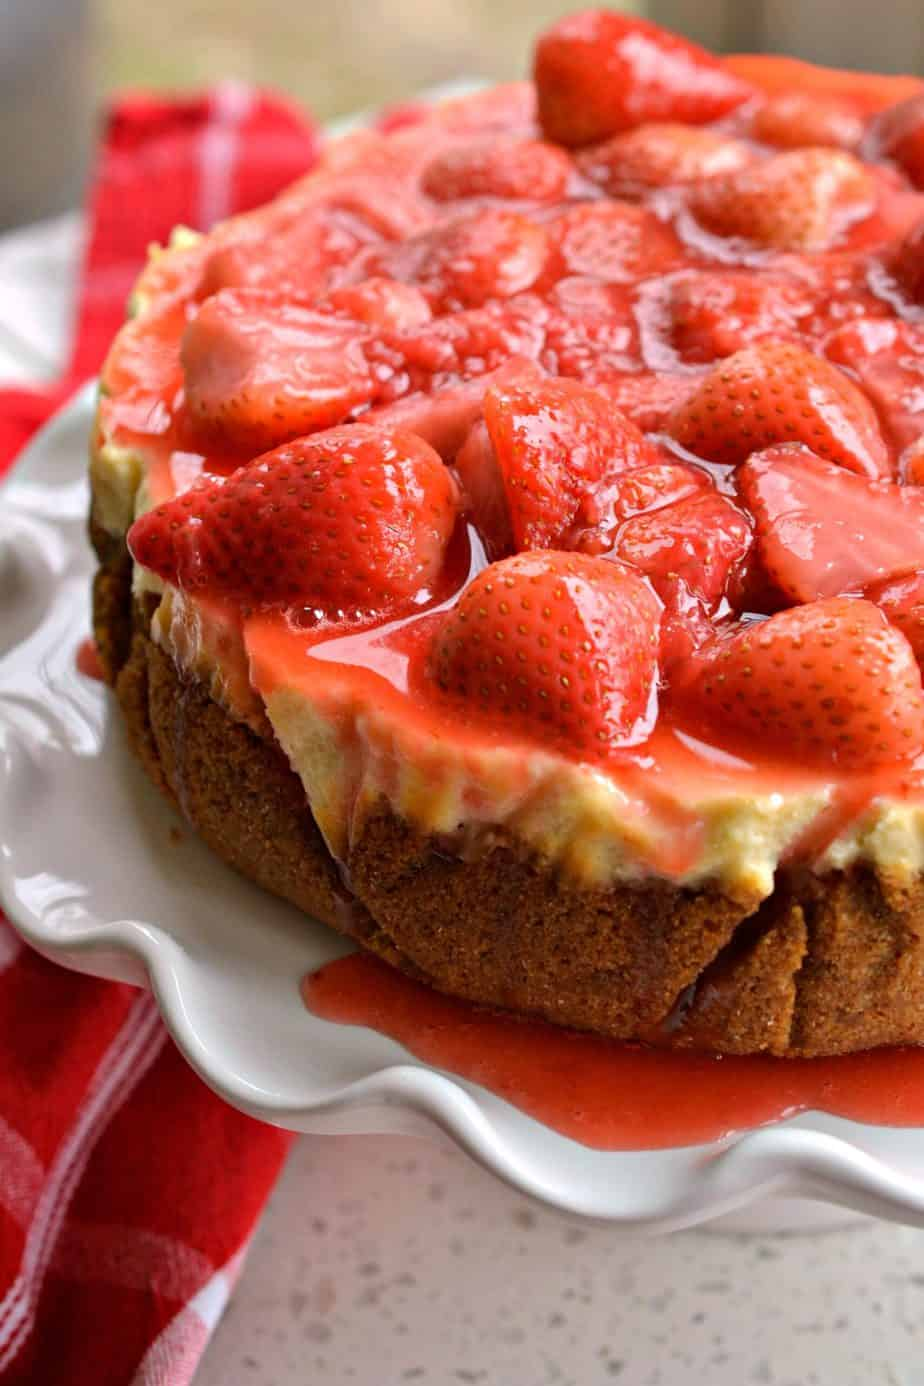 With a few simple tips you too can make an impressive Strawberry Cheesecake.